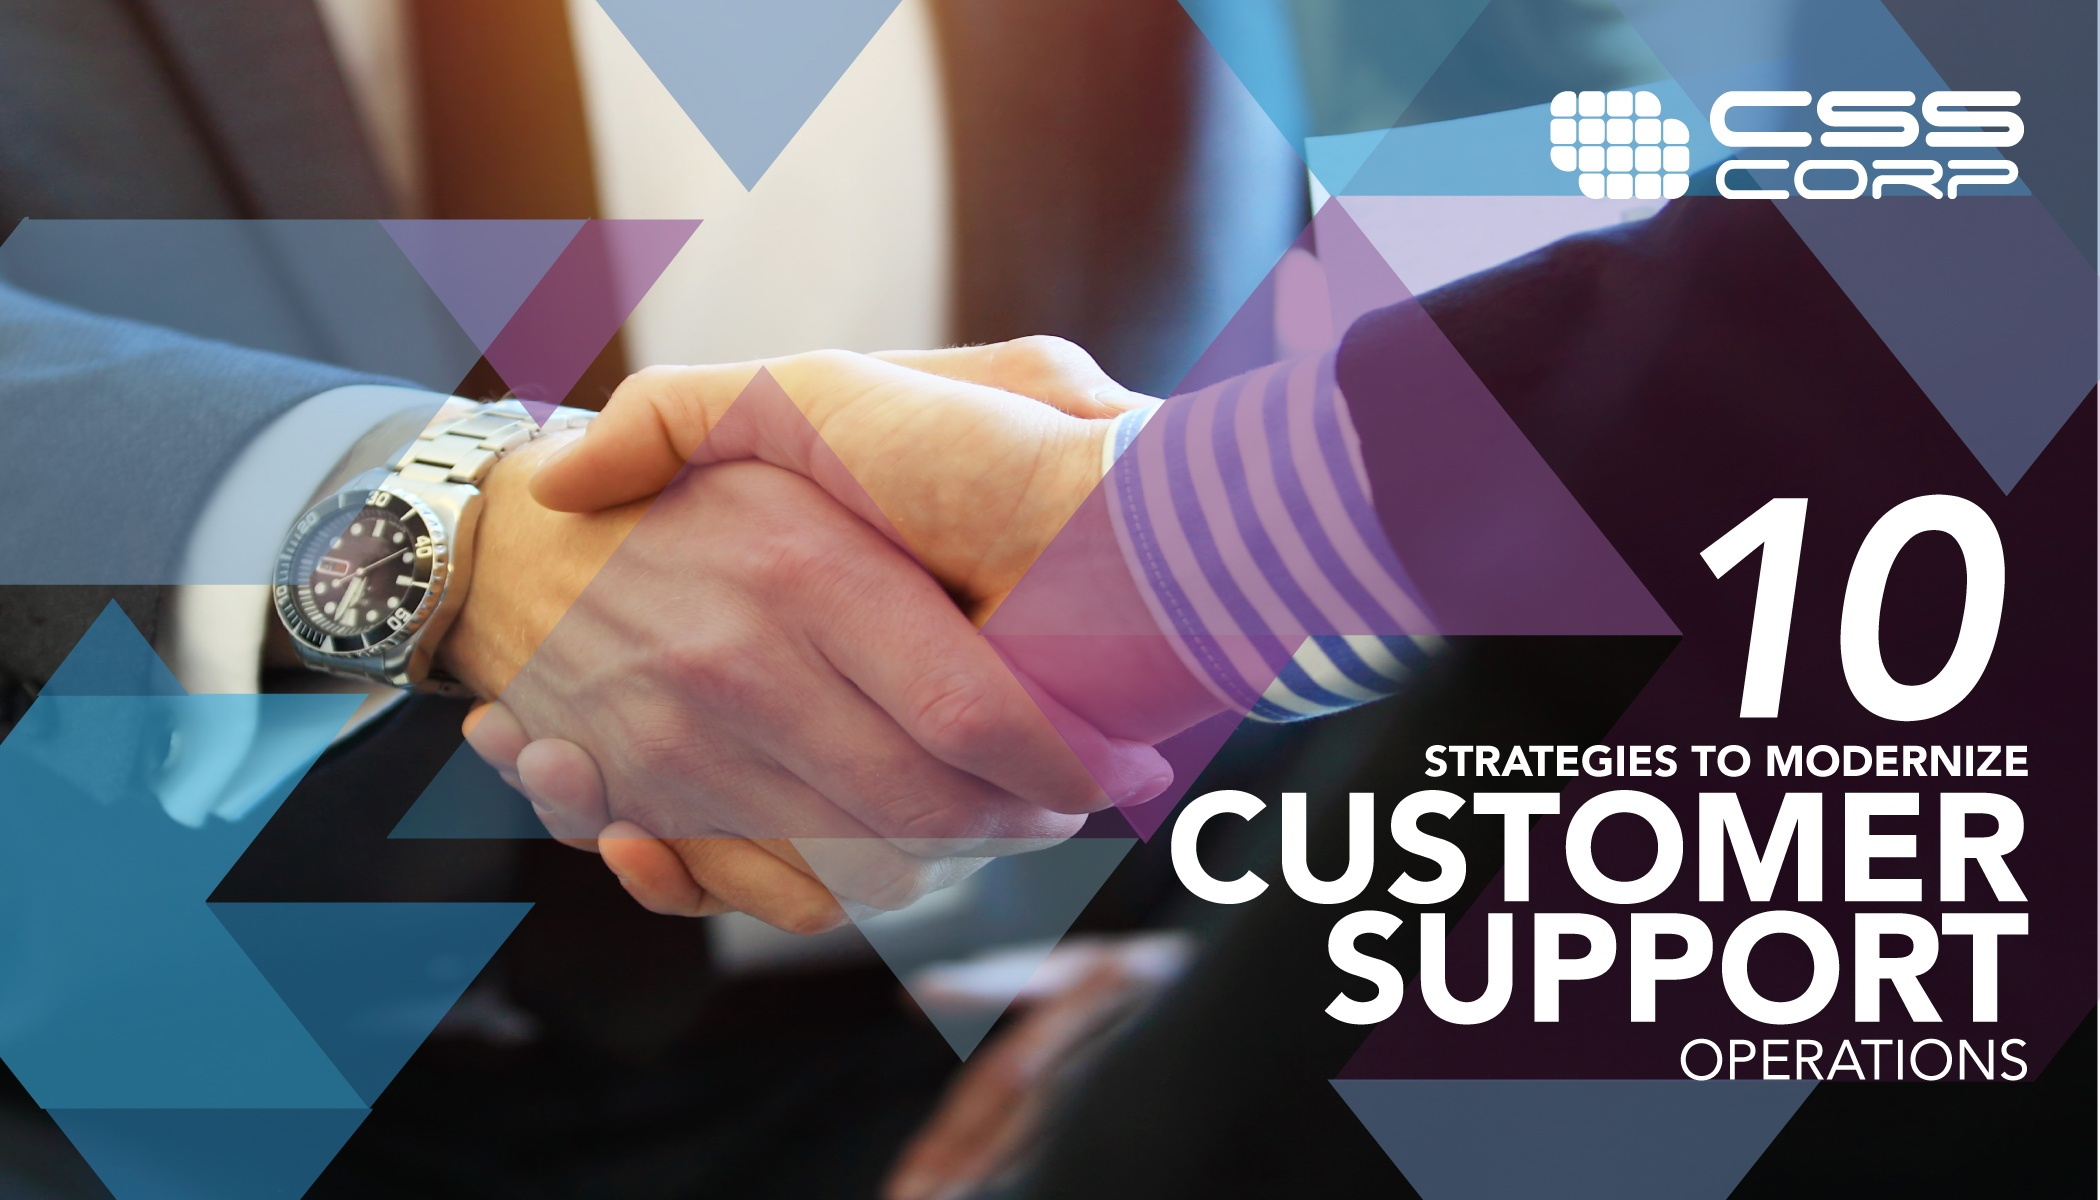 10-Strategies-to-Modernize-Customer-Support-Operations